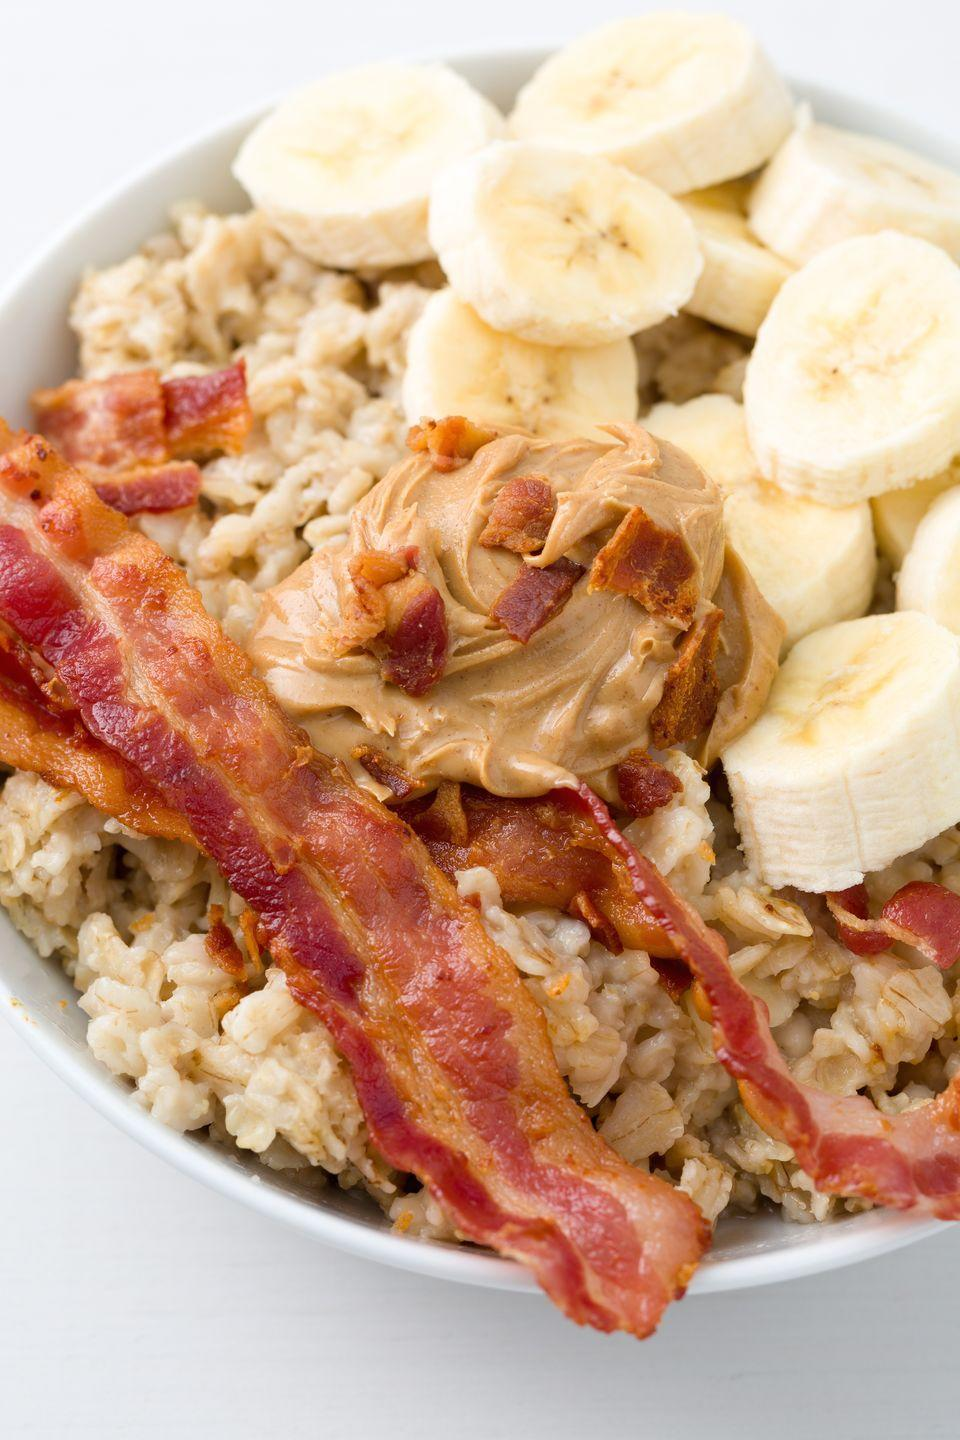 "<p>Elvis was known for his bizarre food cravings, including his love of bacon, banana, and peanut butter sandwiches. That combo is so good, we topped it on oatmeal.</p><p>Get the recipe from <a href=""https://www.delish.com/cooking/recipe-ideas/recipes/a44491/elvis-oatmeal-recipe/"" rel=""nofollow noopener"" target=""_blank"" data-ylk=""slk:Delish"" class=""link rapid-noclick-resp"">Delish</a>.</p>"